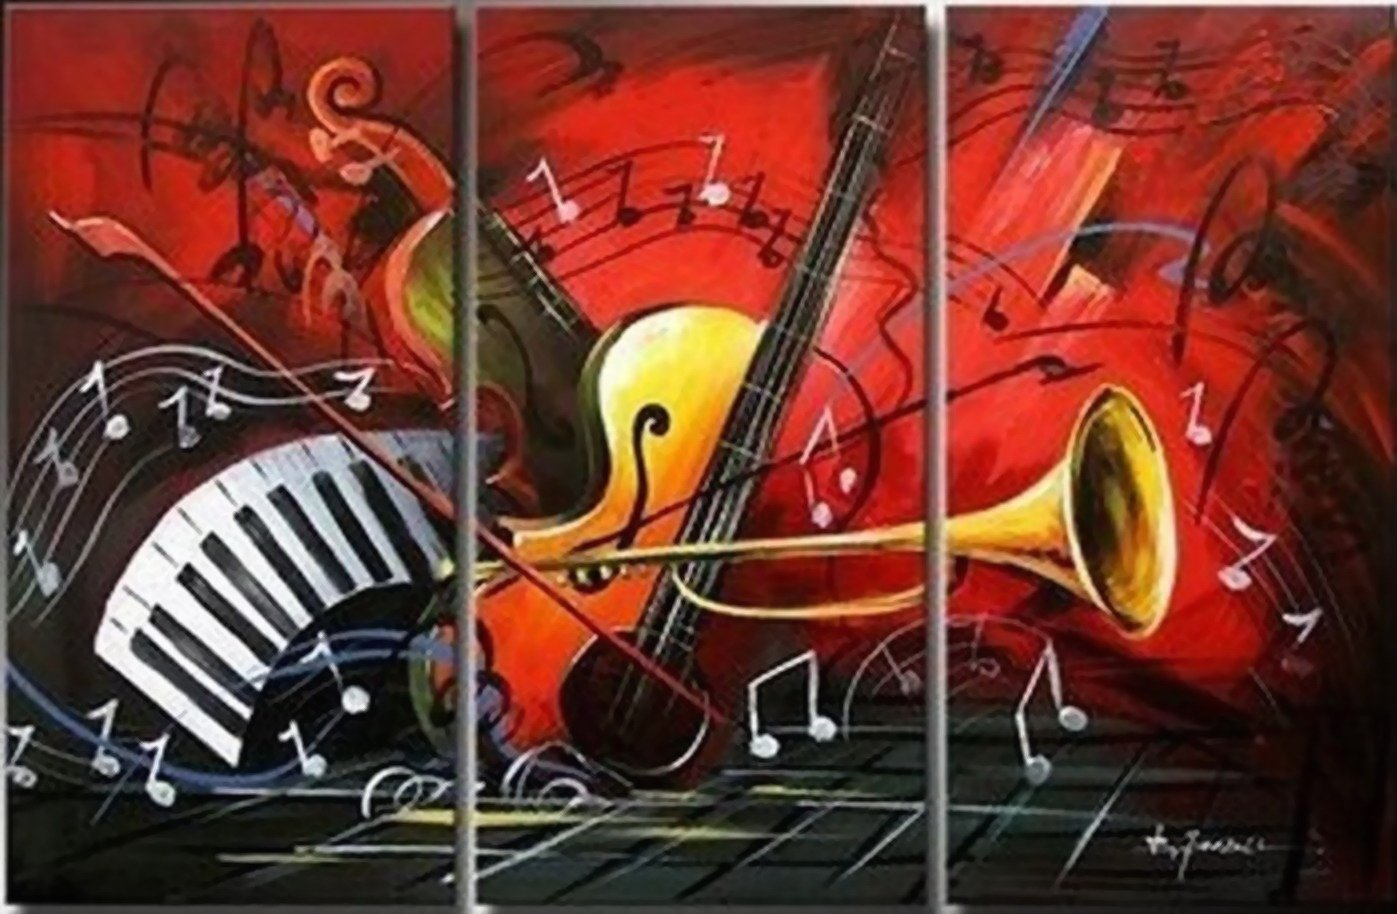 Abstract Art, Red Abstract Painting, Bedroom Wall Art, Violin, Horn, Guitar Painting, Extra Large Painting